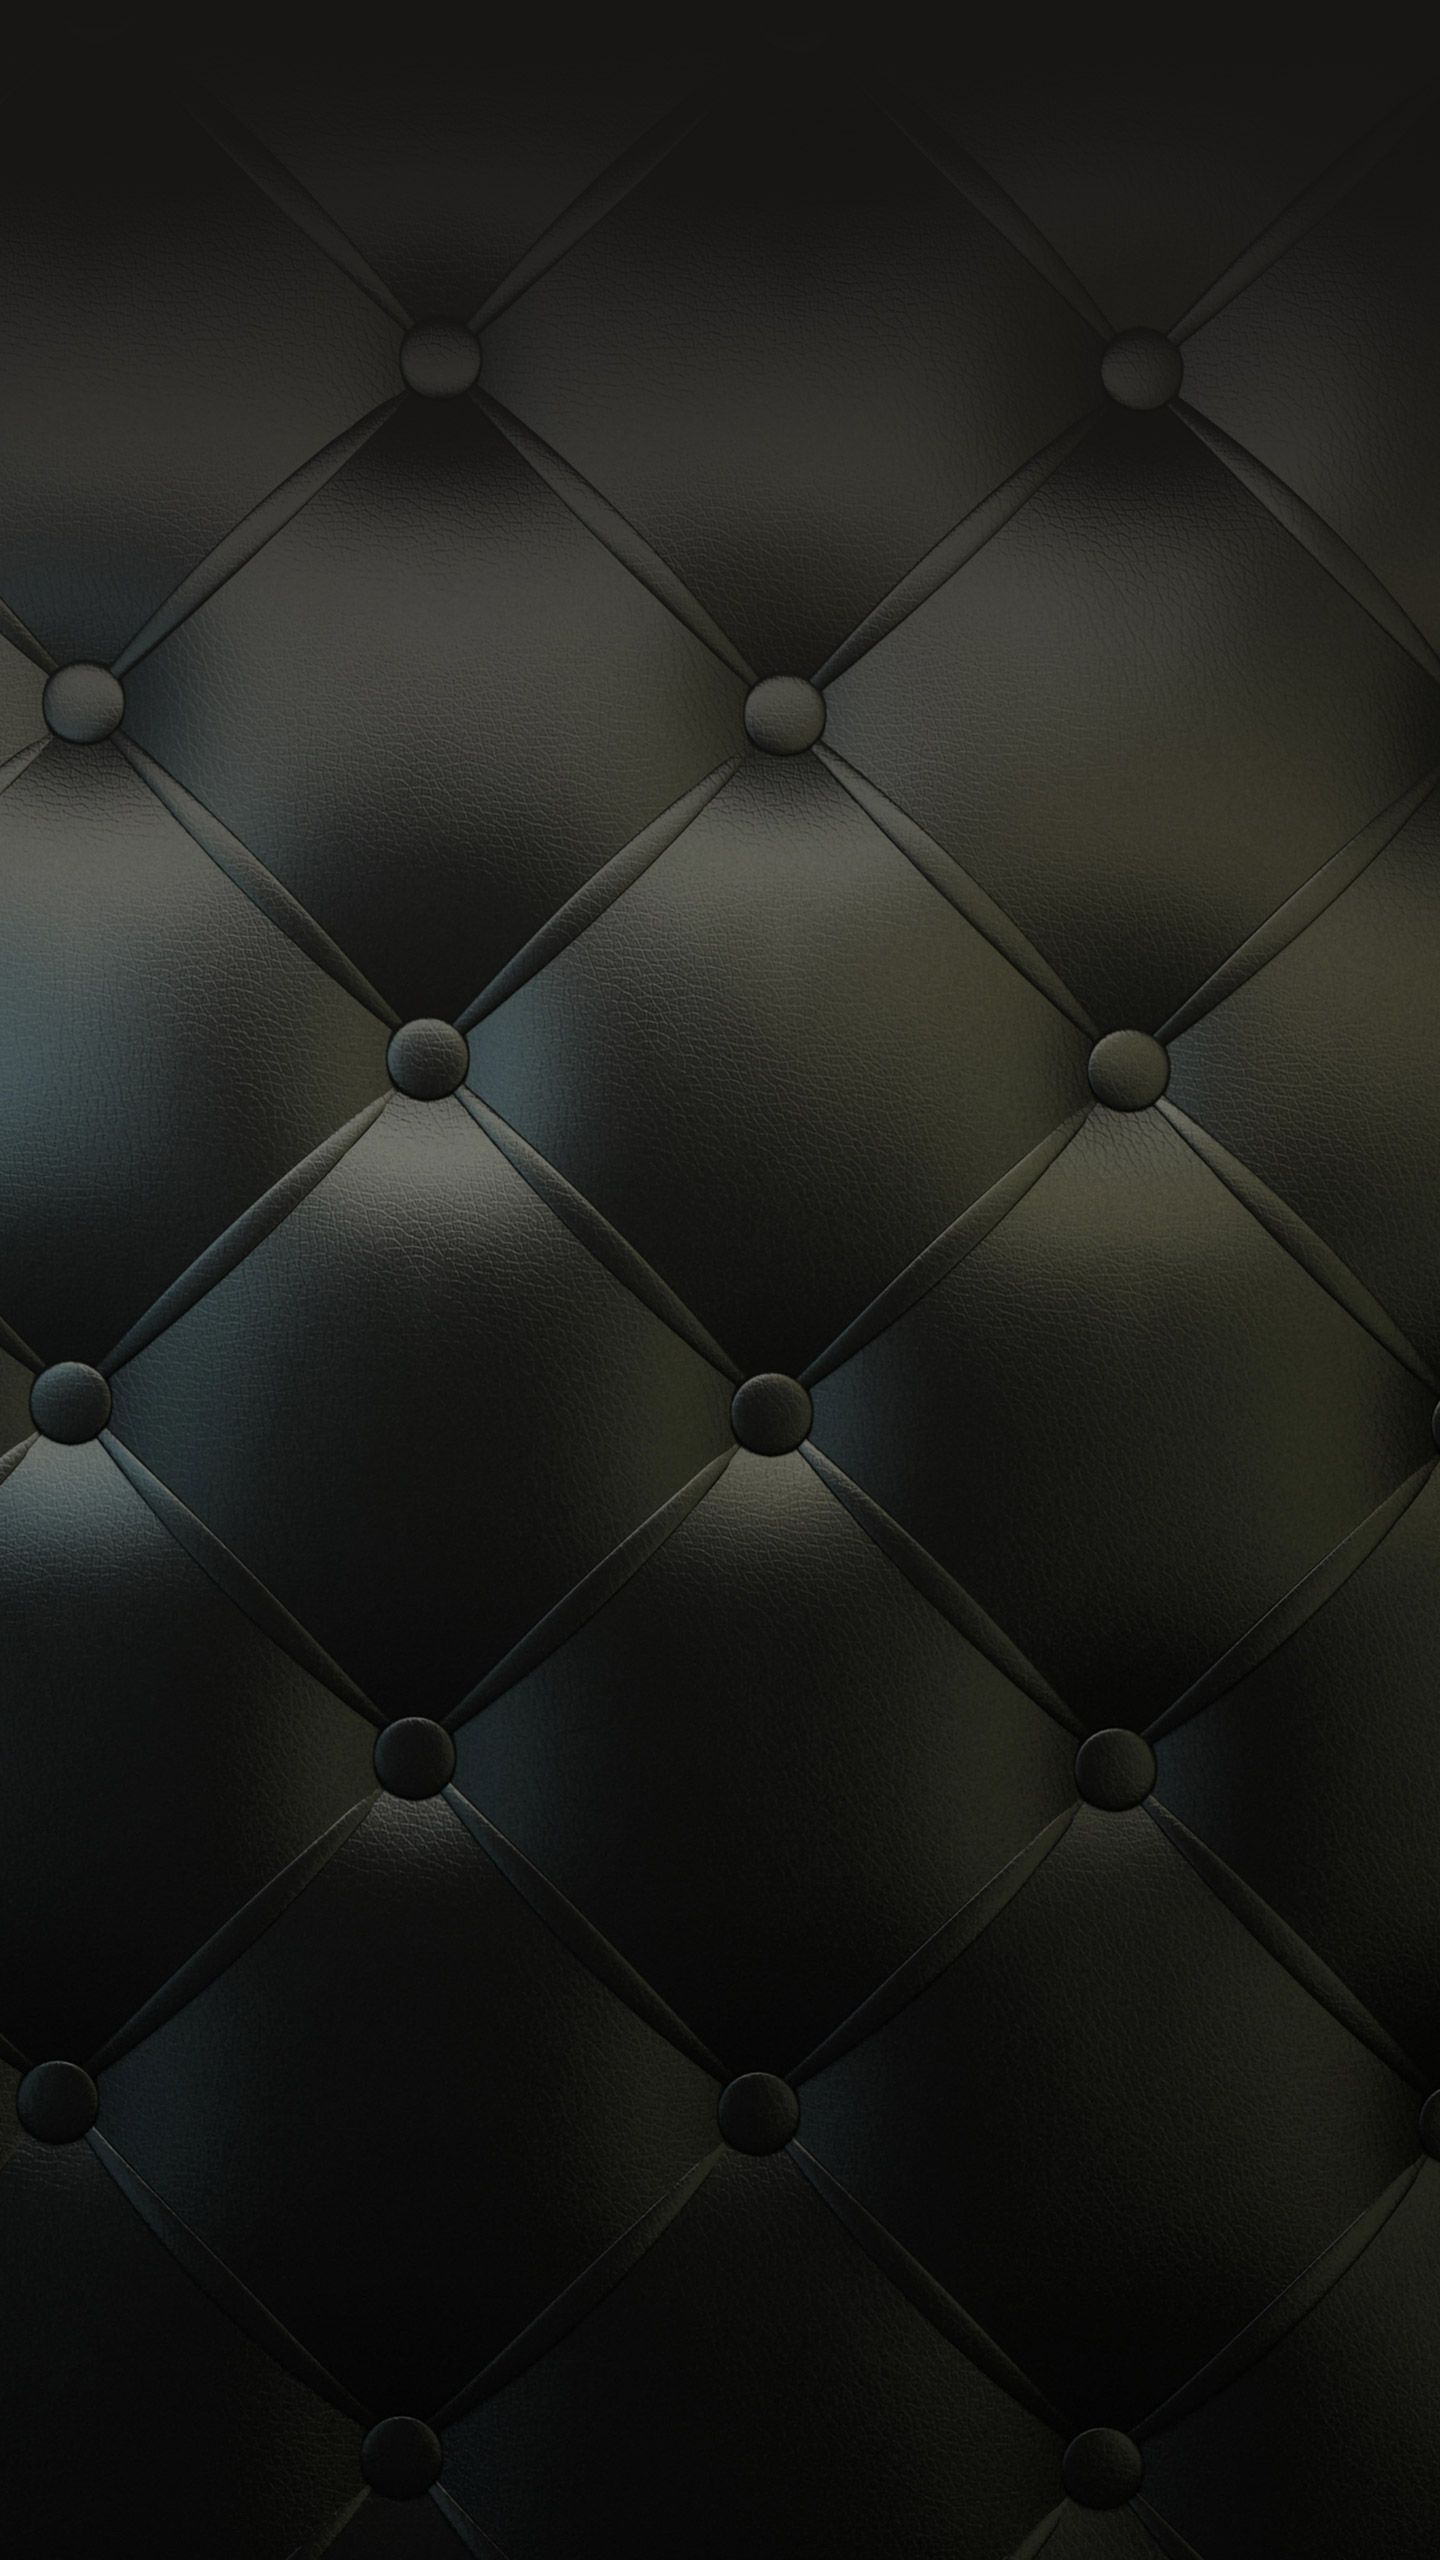 Puffy Black Leather pattern simple background basic